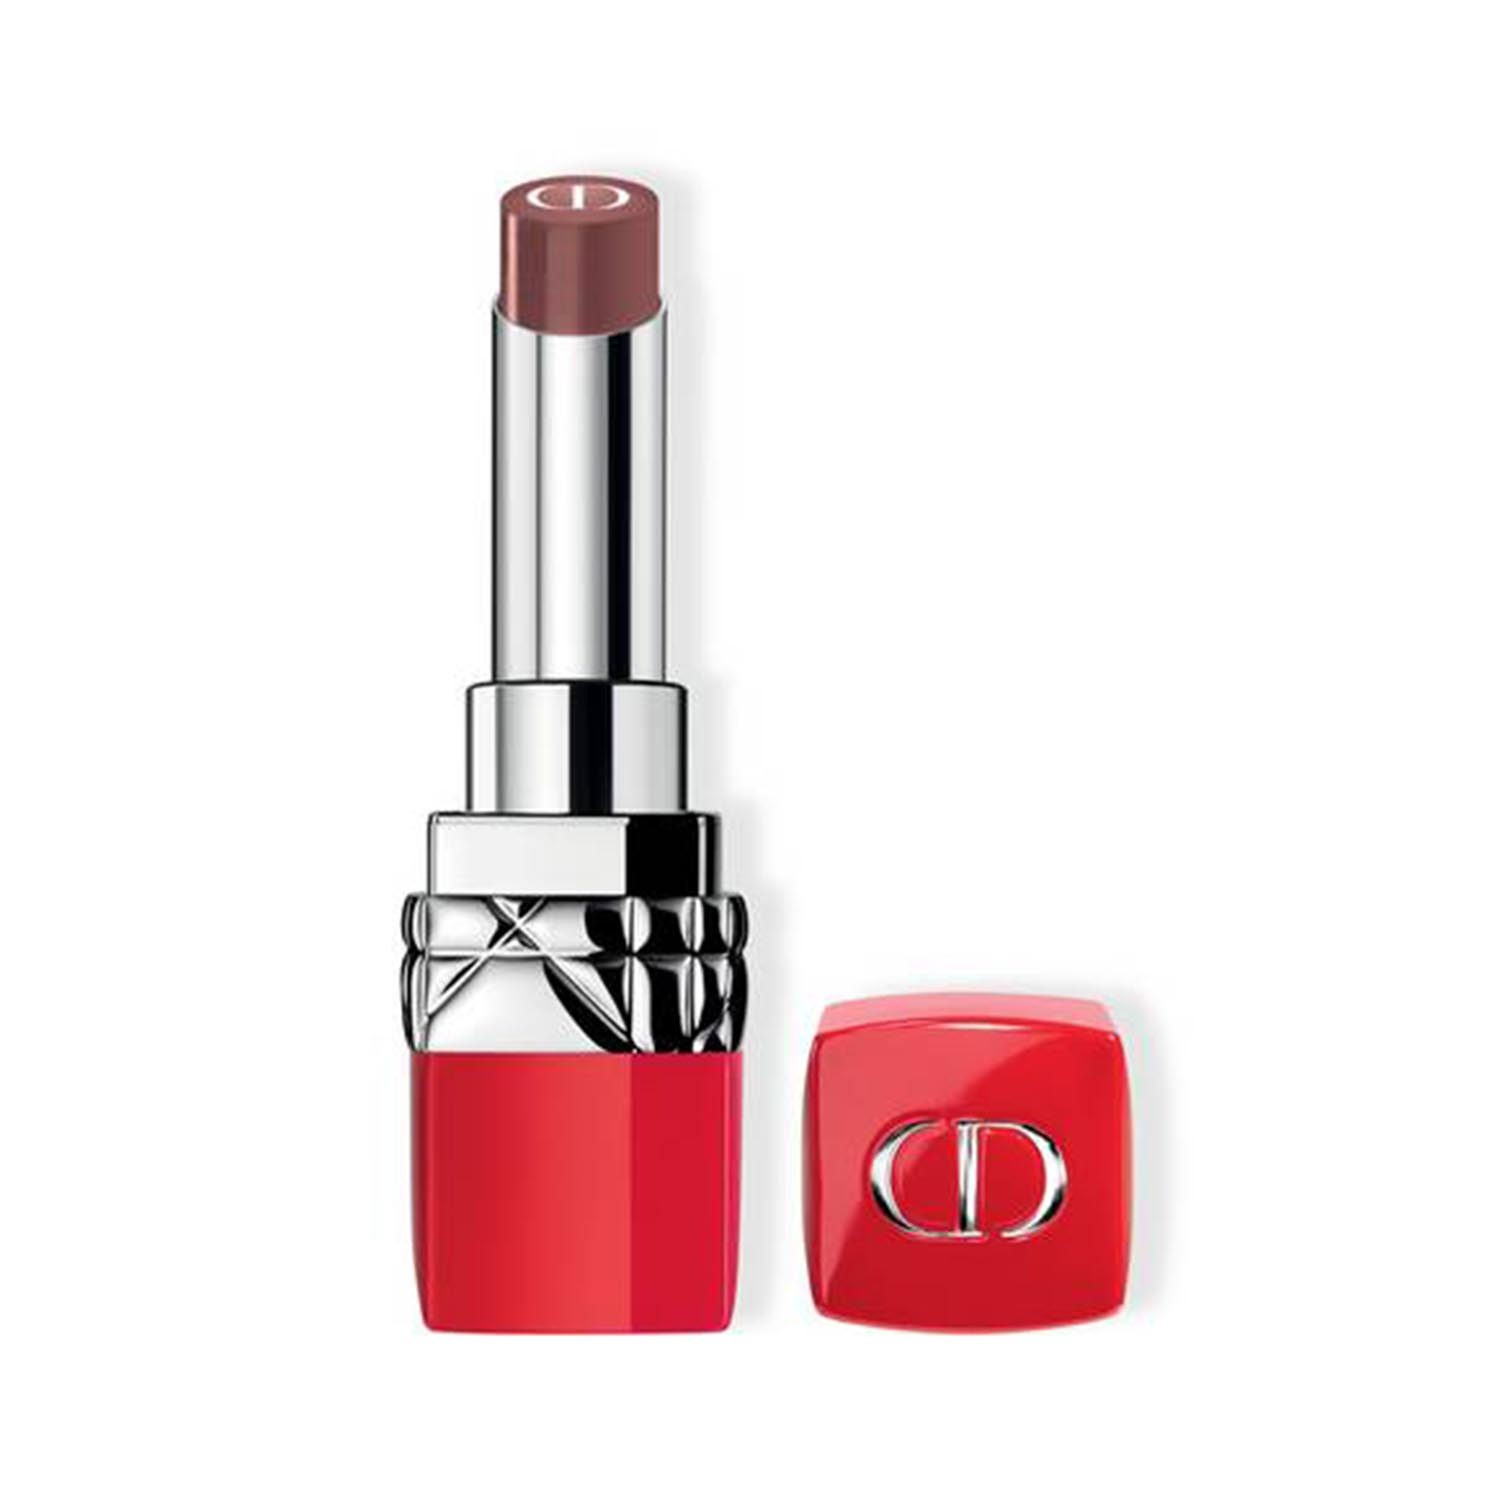 Dior rouge dior ultra care liquid lipstick 736 nude